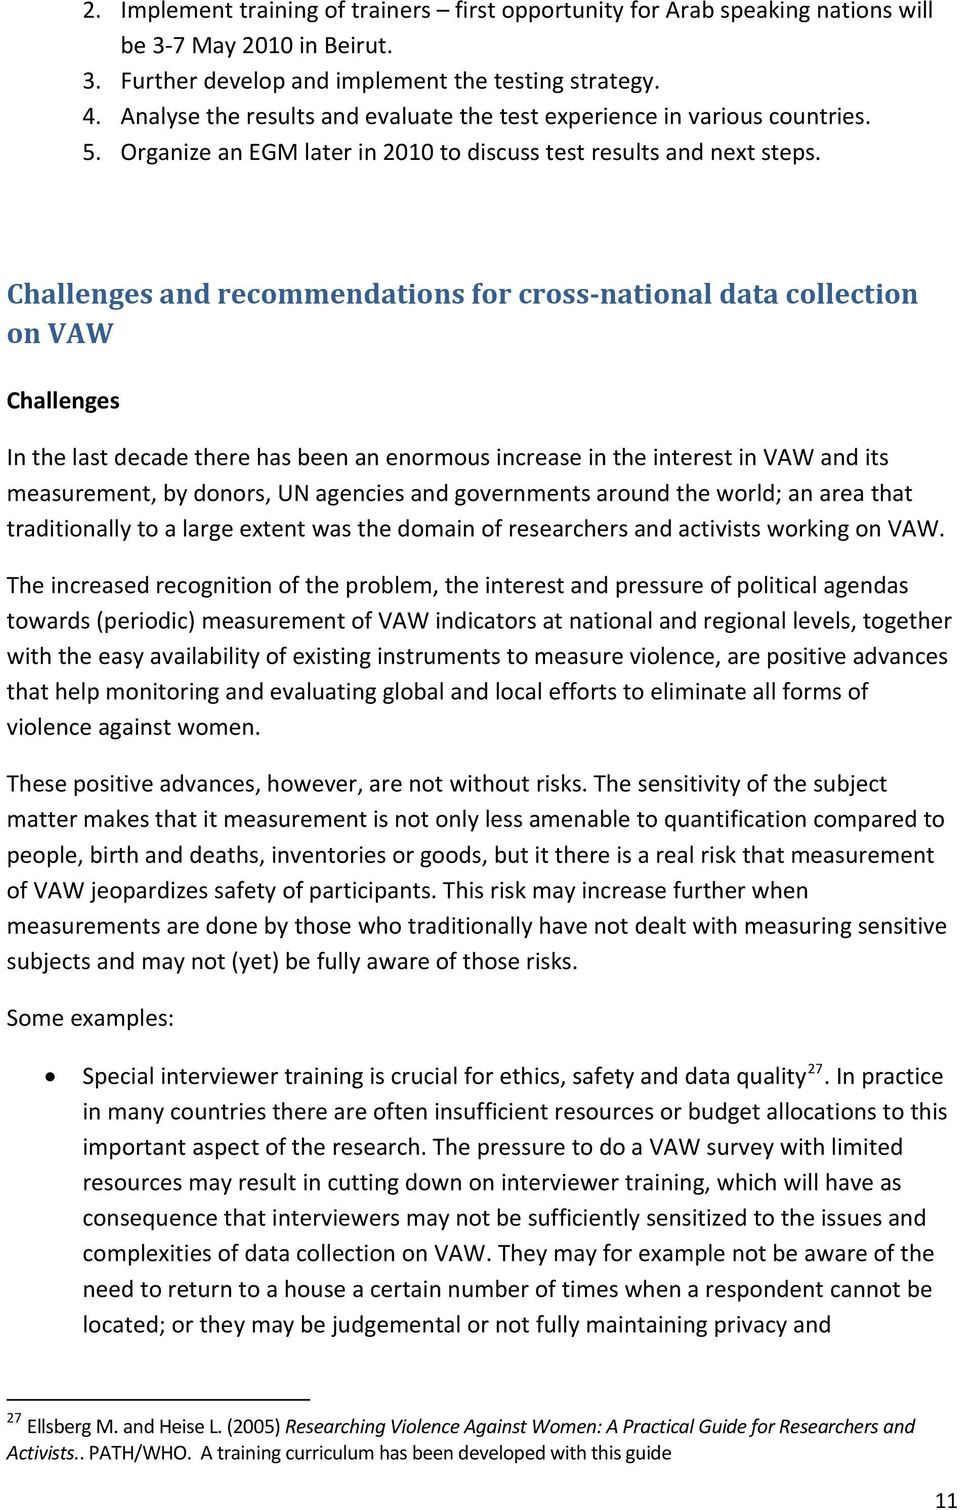 Challenges and recommendations for cross national data collection on VAW Challenges In the last decade there has been an enormous increase in the interest in VAW and its measurement, by donors, UN